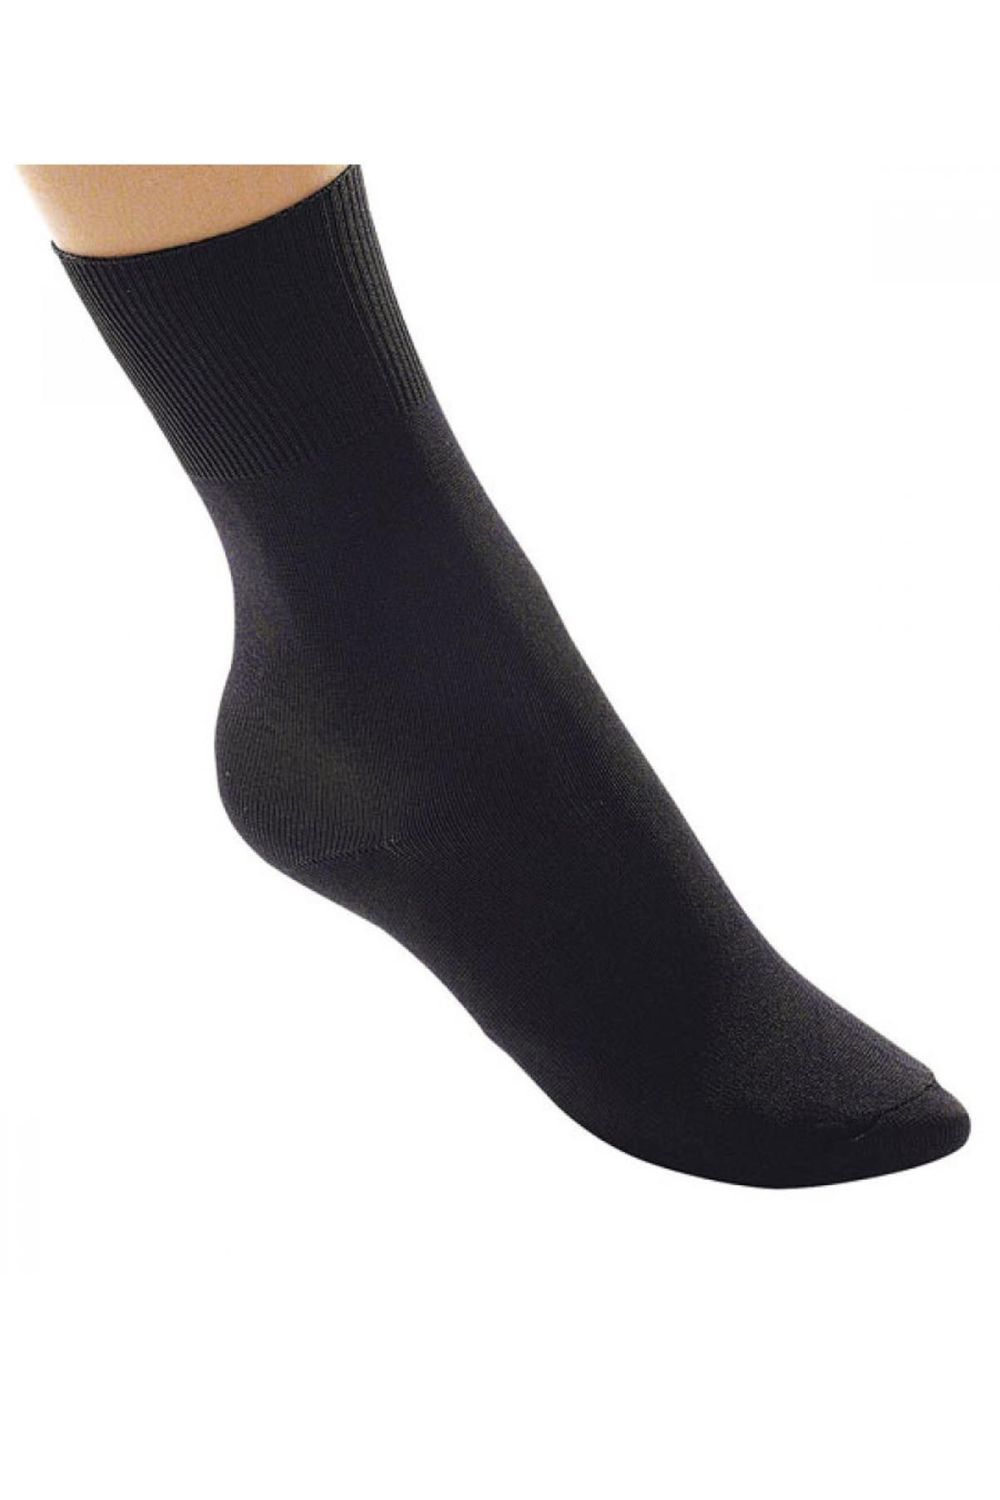 Black Ballet Socks